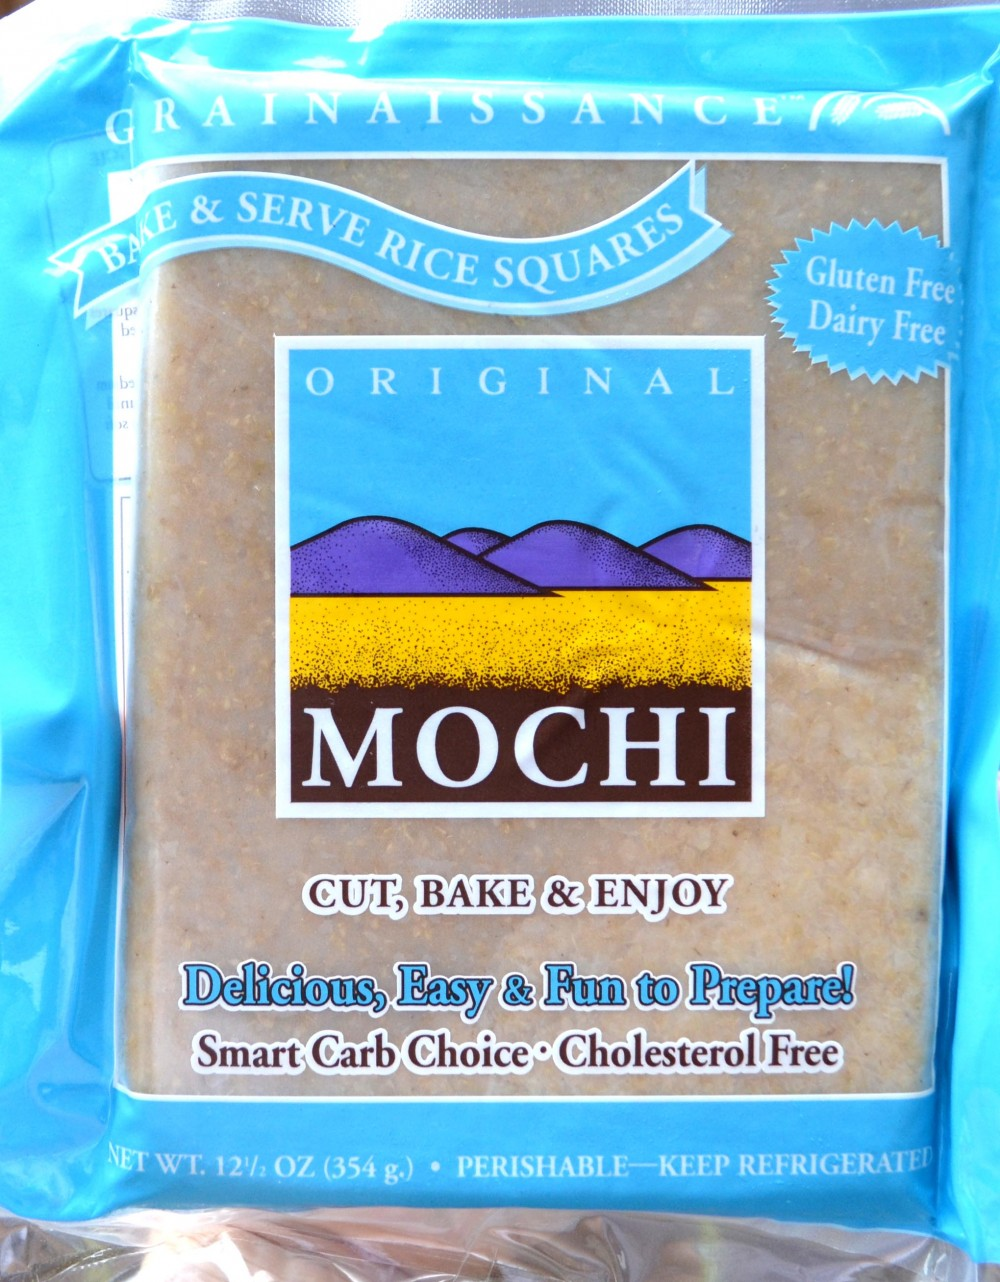 Prepared mochi, made with organic brown rice and water.